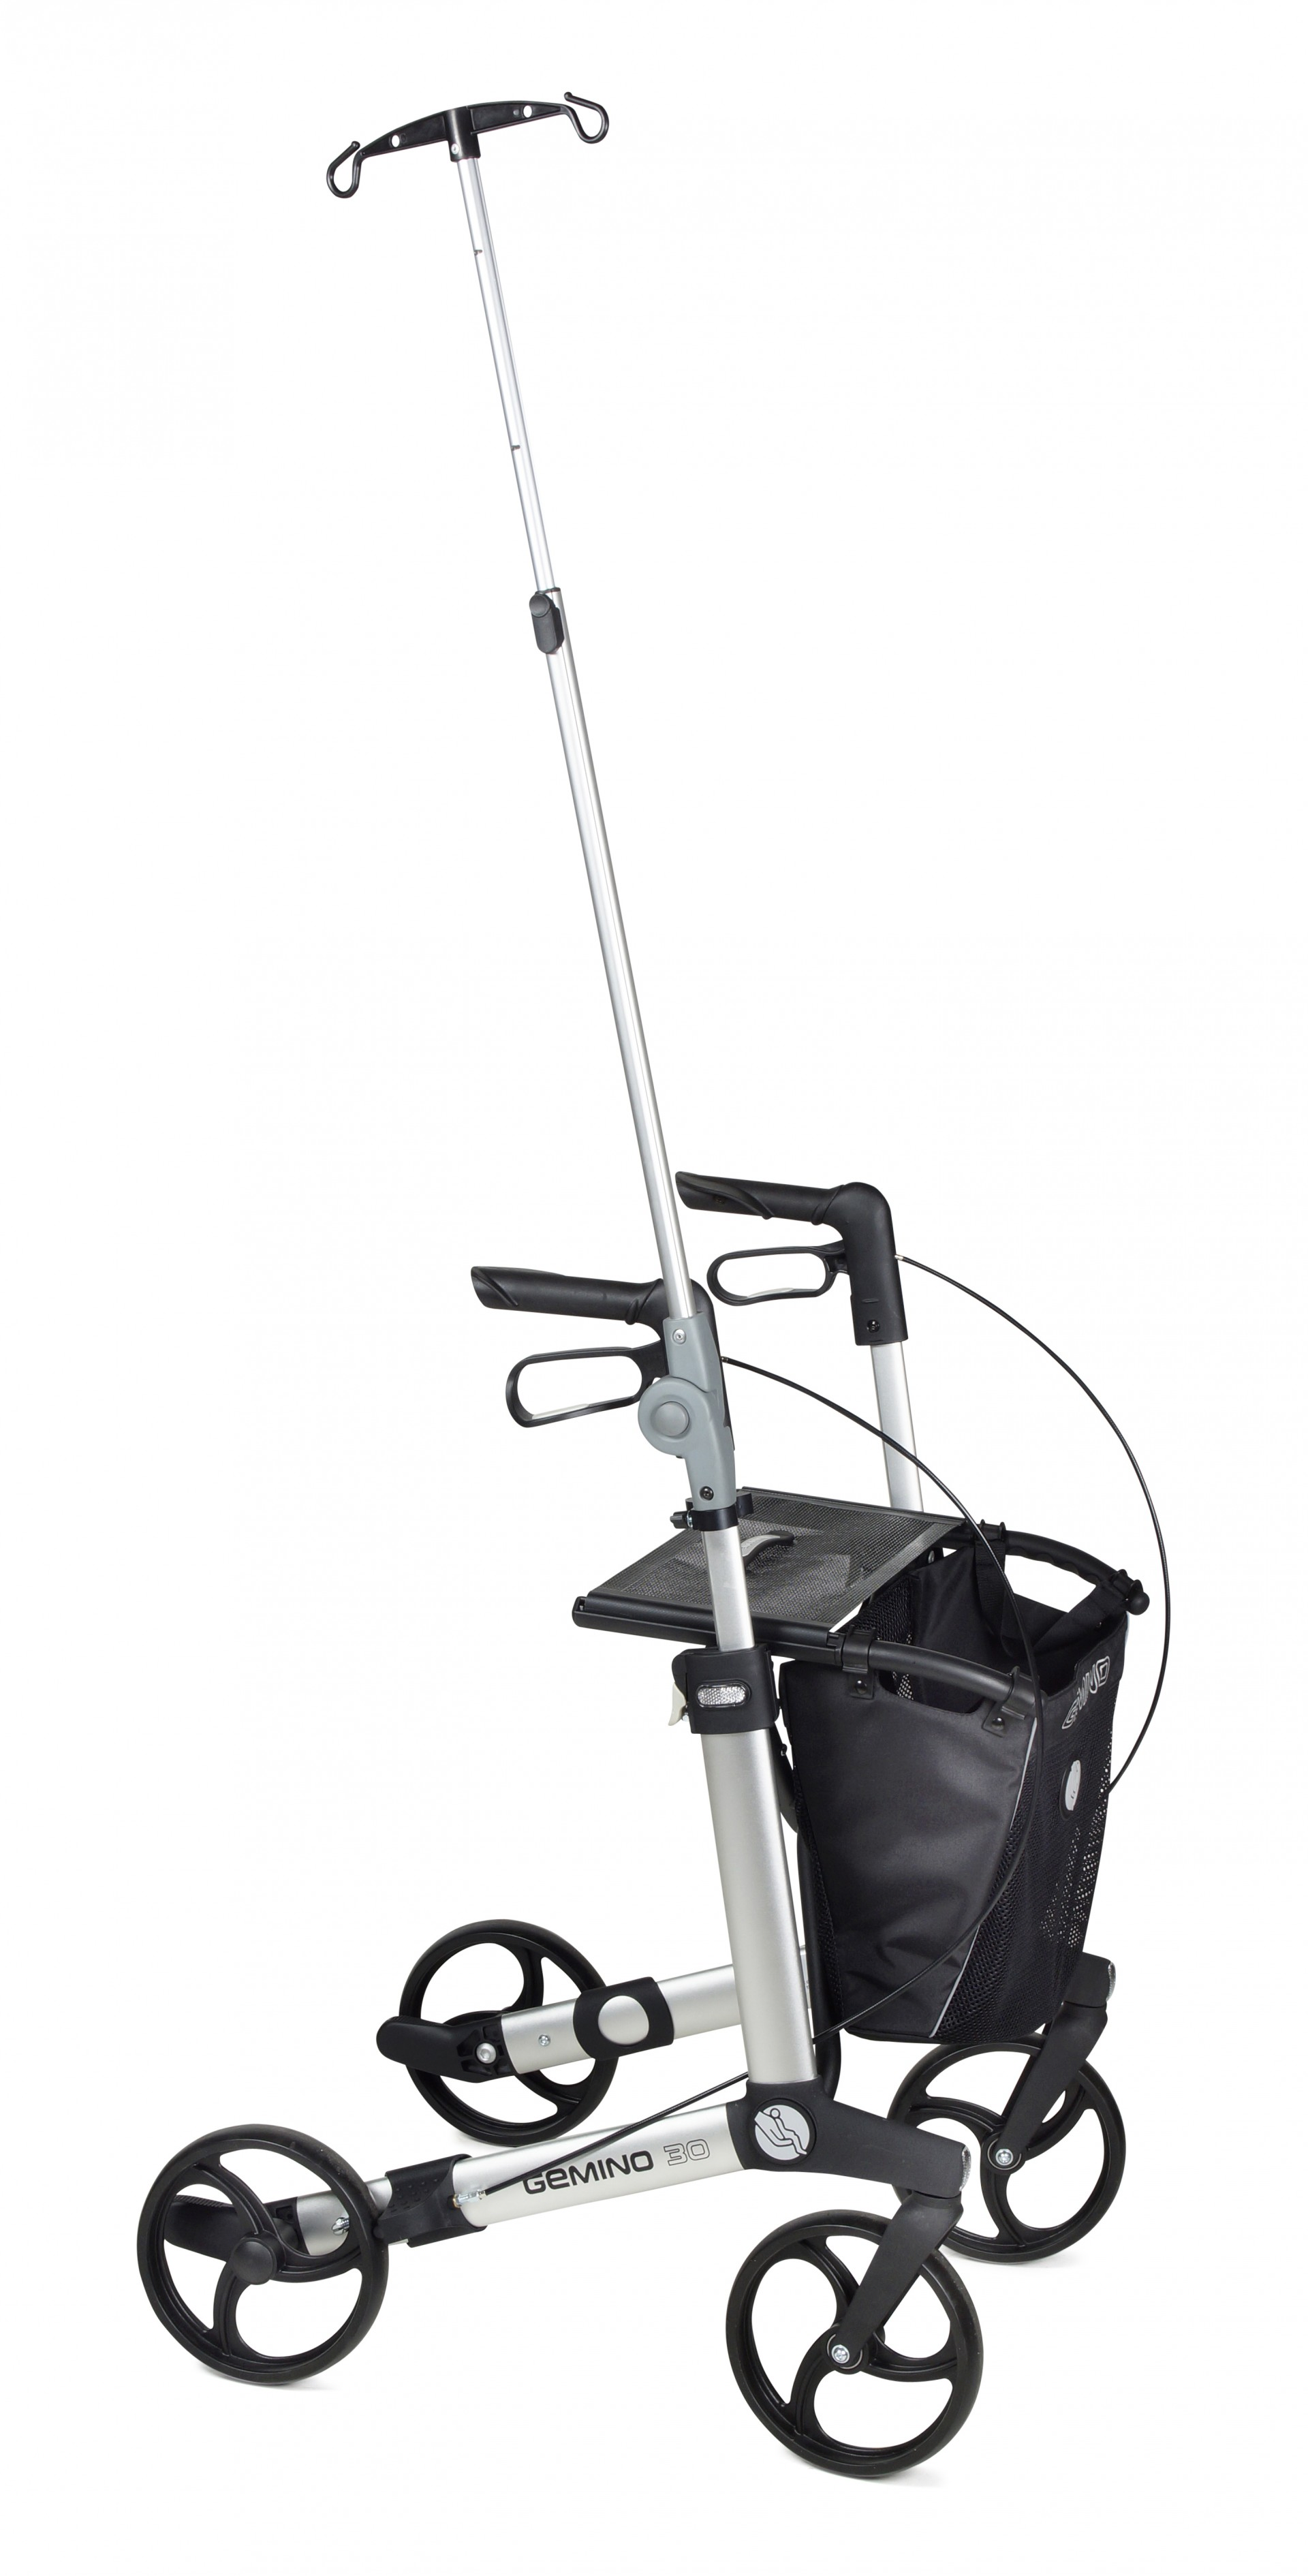 Infuushouder Gemino 30 rollator van Sunrise Medical